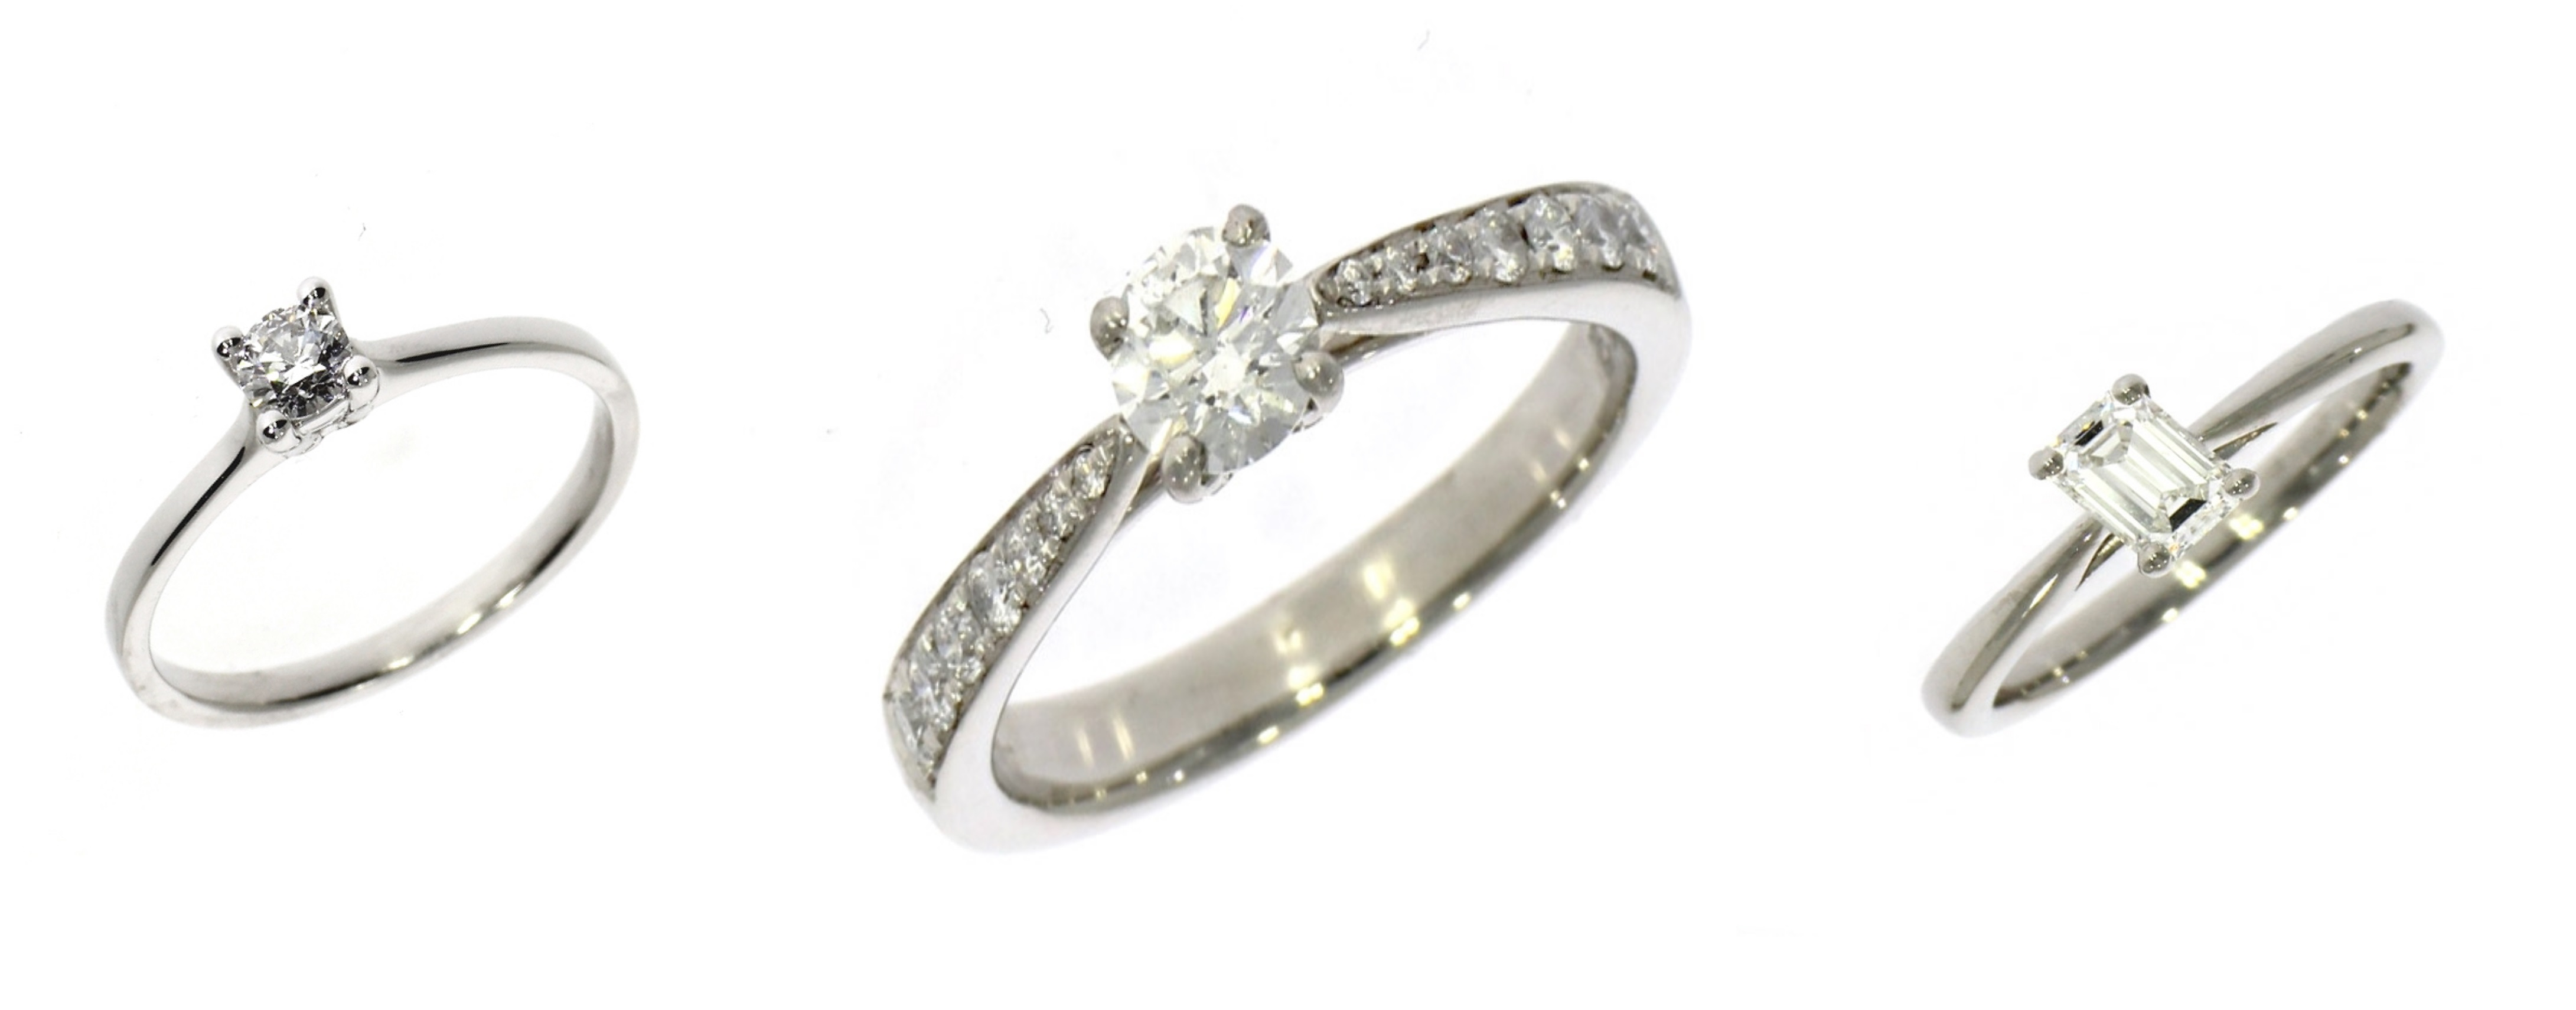 the most best gorgeous getty glamour of main story weddings rings celebrity engagement diamond